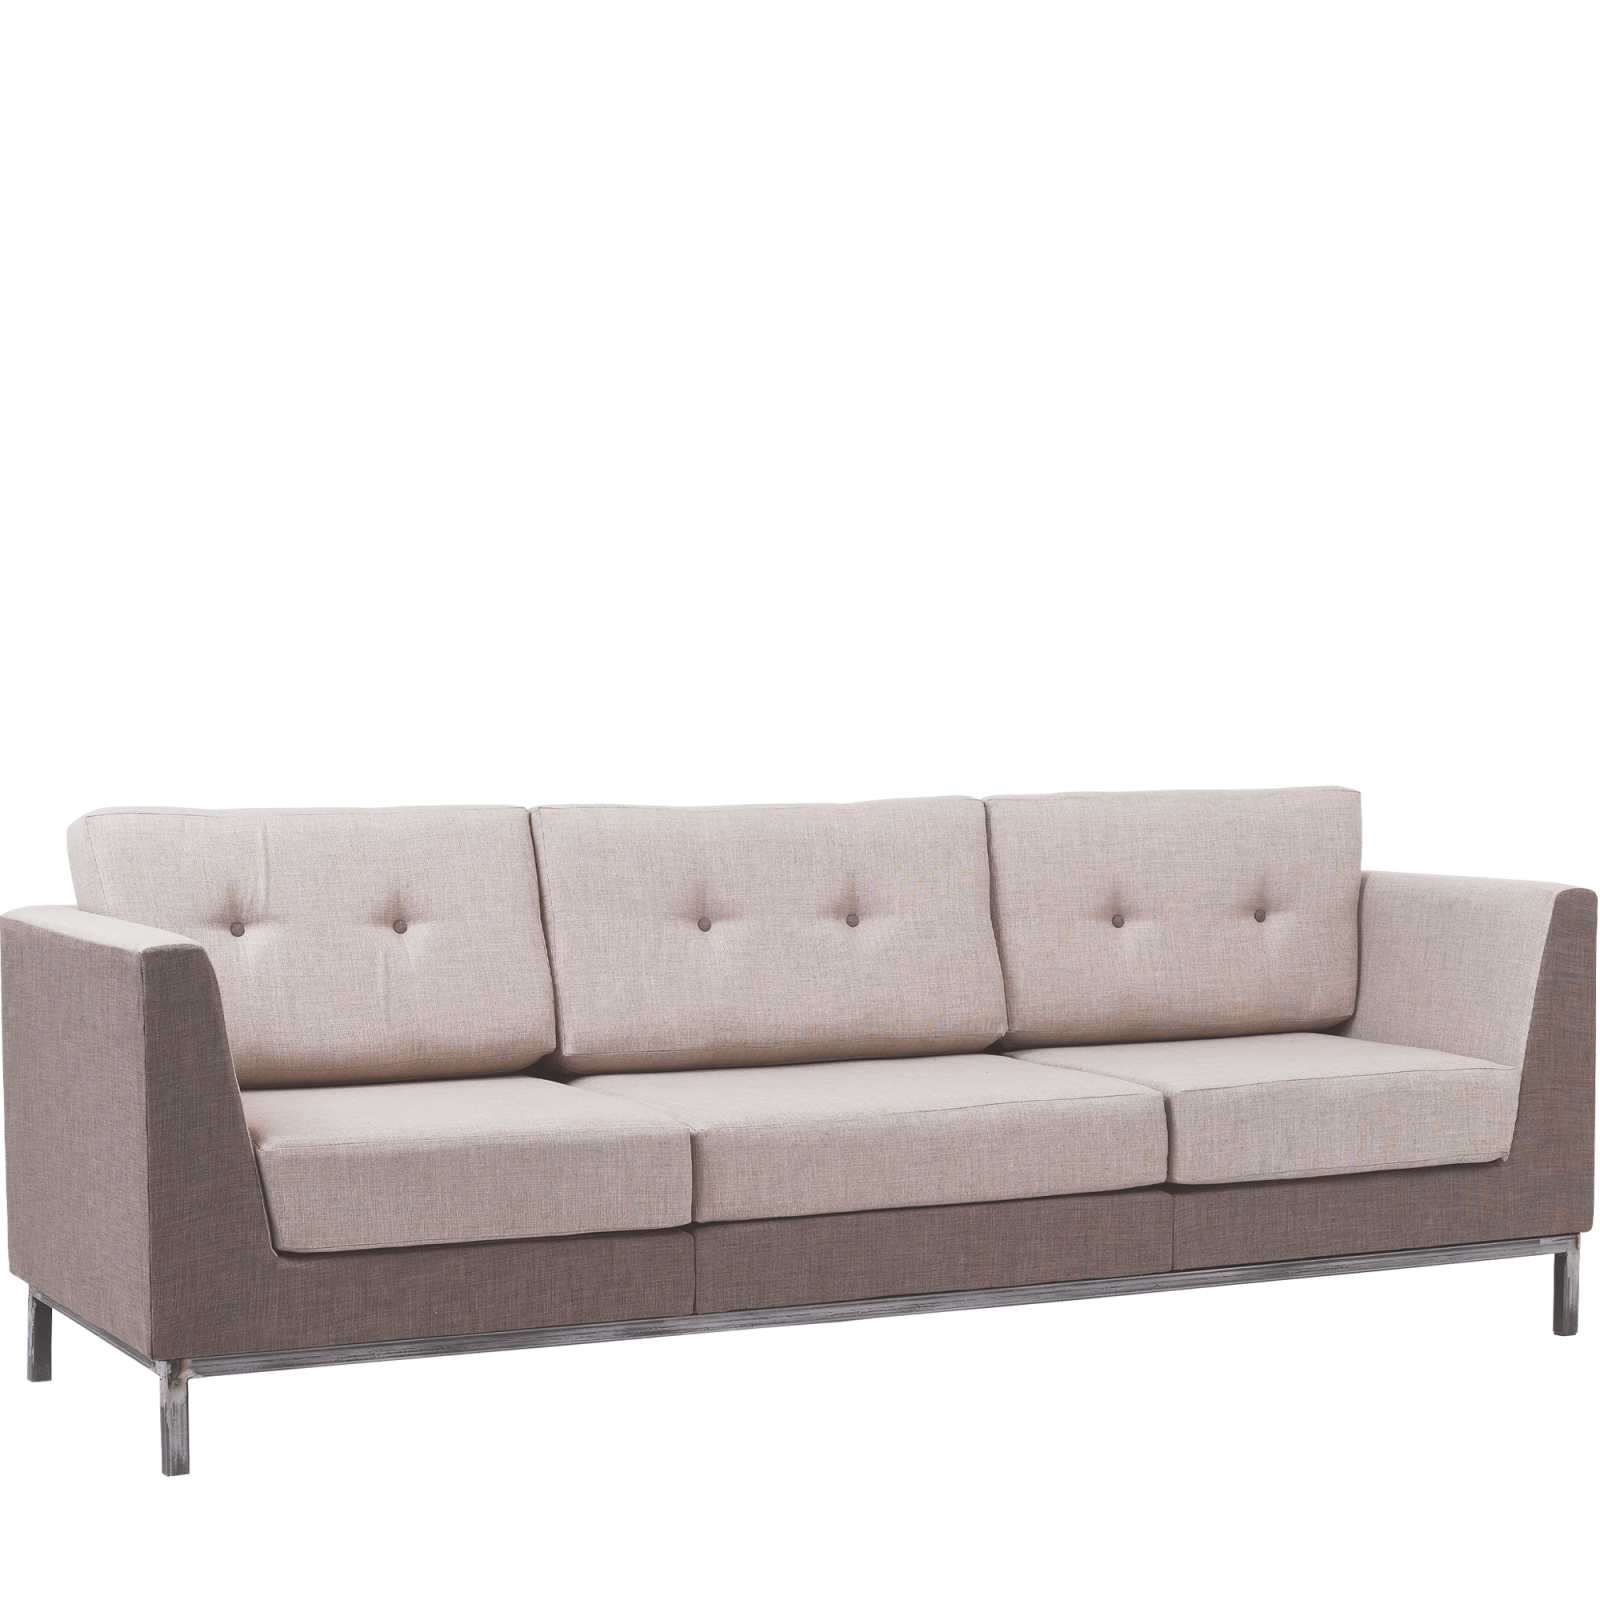 Munich 3-Seater Sofa Hire for Events